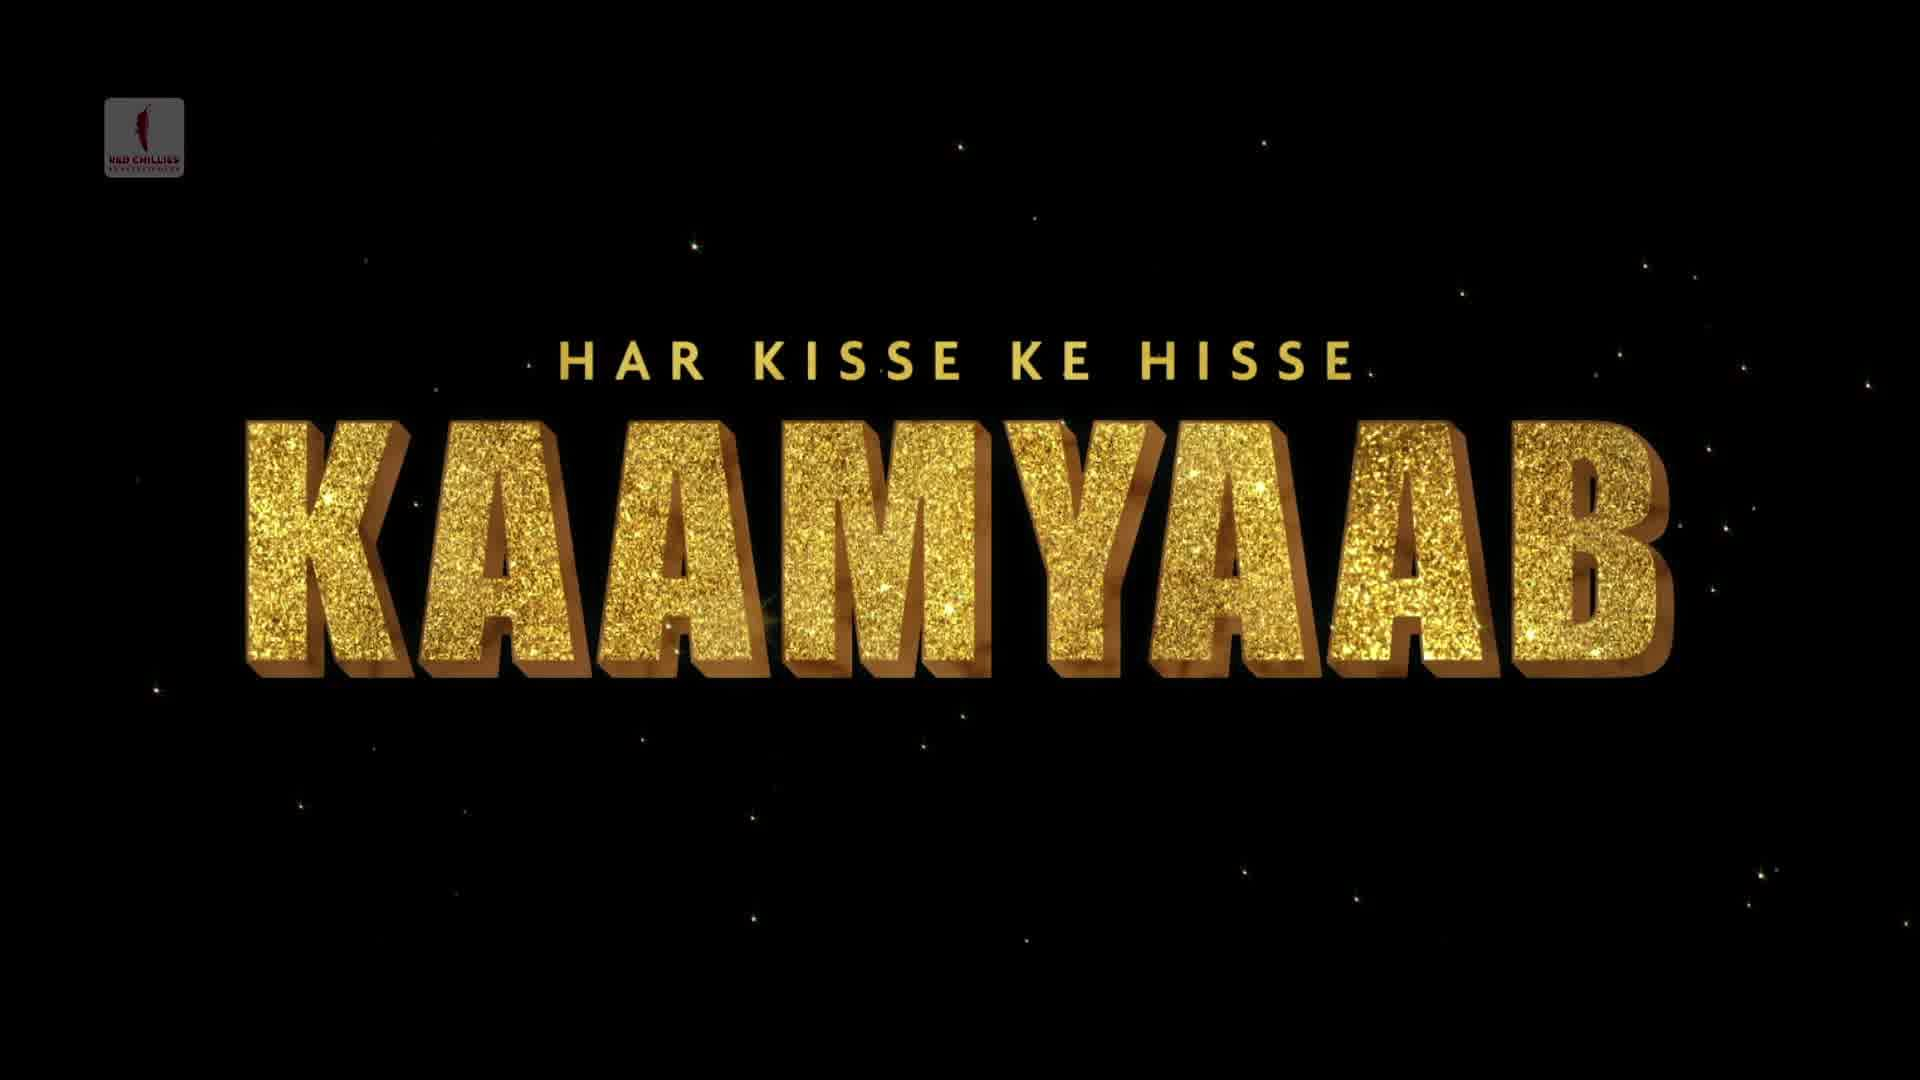 Enjoying life...aur option kya hai? Here's the official #KaamyaabTrailer, an extraordinary story of a character actor. In cinemas 6 Mar Sanjay Mishra #DeepakDobriyal #HardikMehta‬‬ Gauri Khan #ManishMundra #VenkyMysore Gaurav Verma Red Chillies Entertainment Drishyam Films